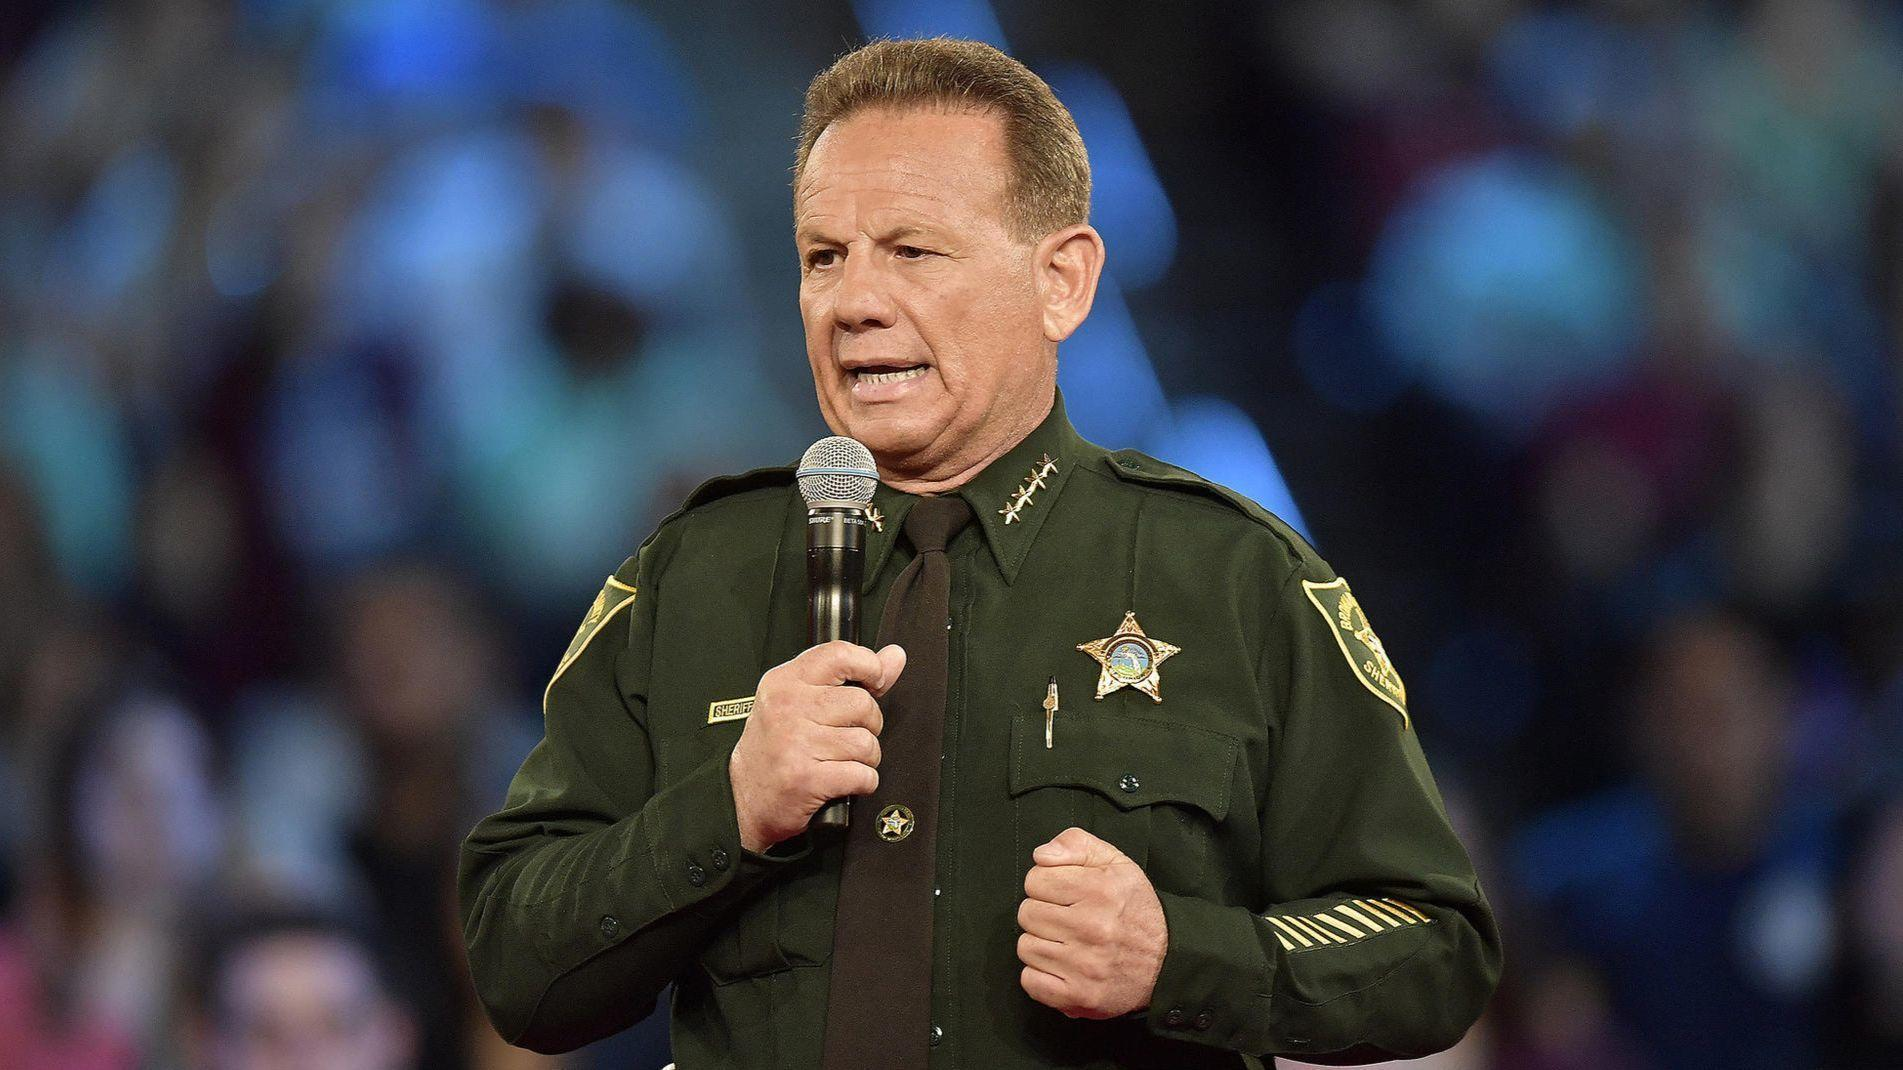 Gov. Ron DeSantis to suspend, replace Broward Sheriff Scott Israel on Friday